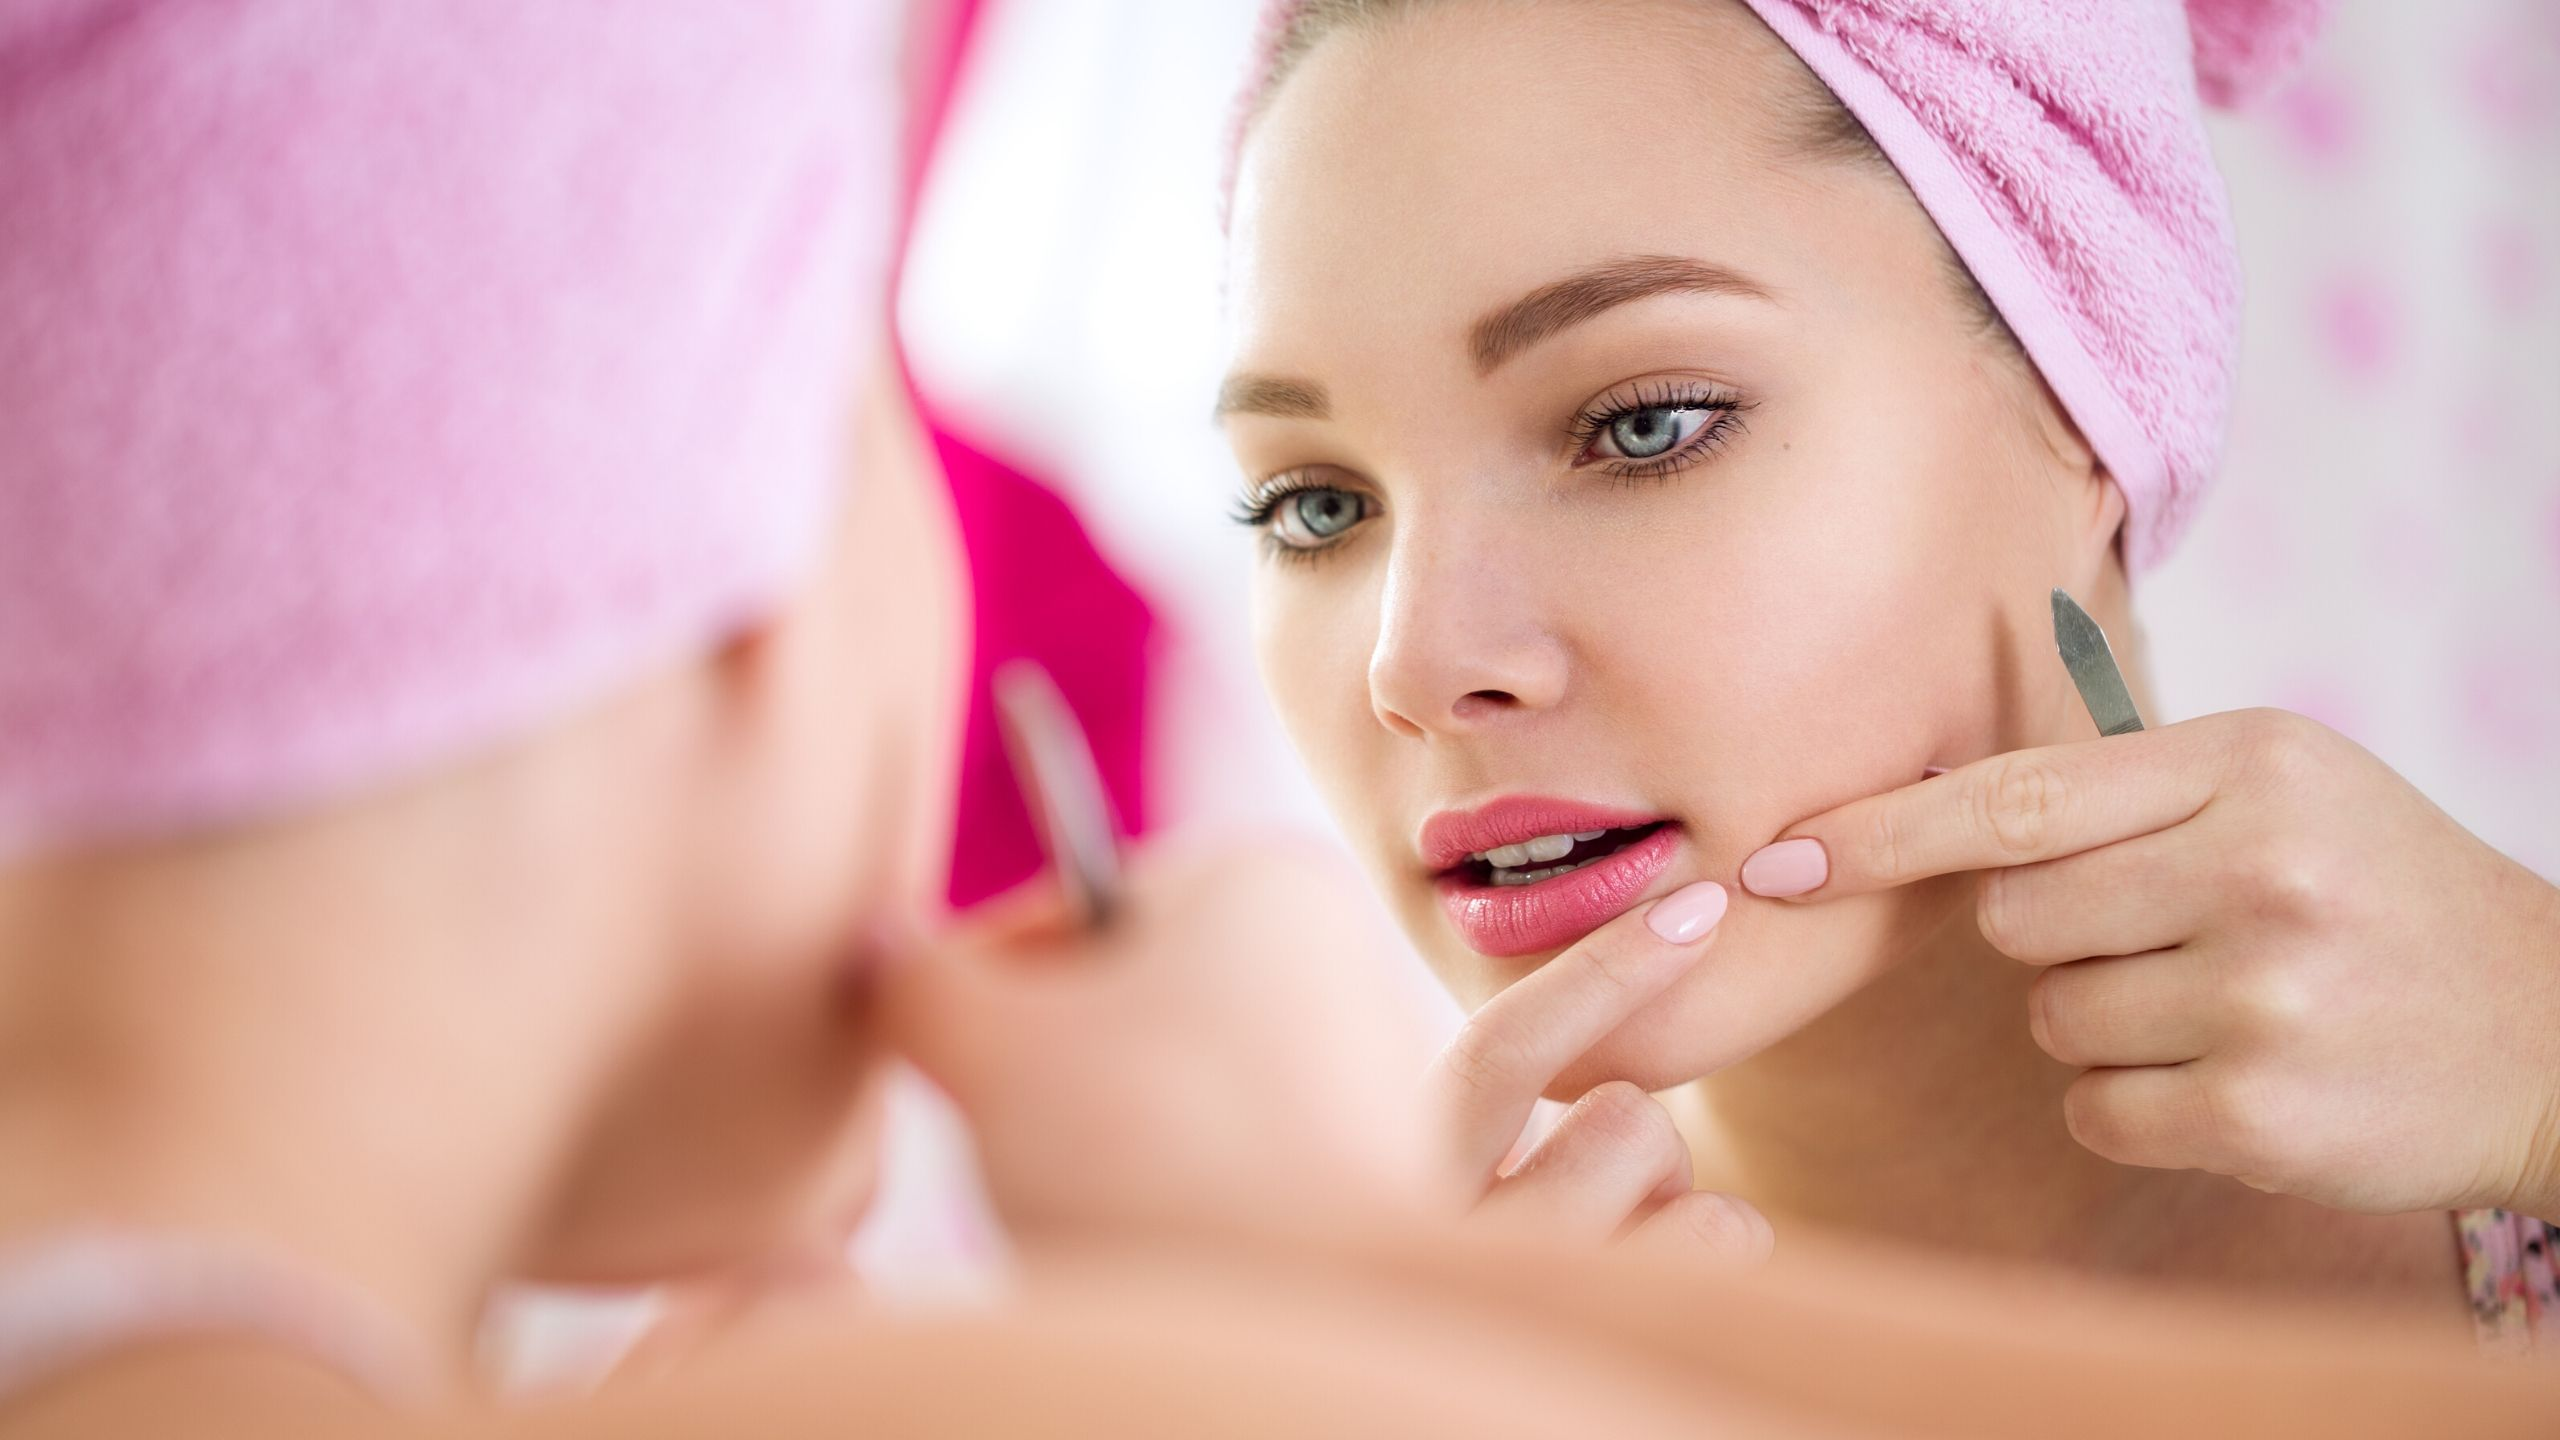 You are currently viewing Remove Pimples (Acne) Overnight Naturally at Home